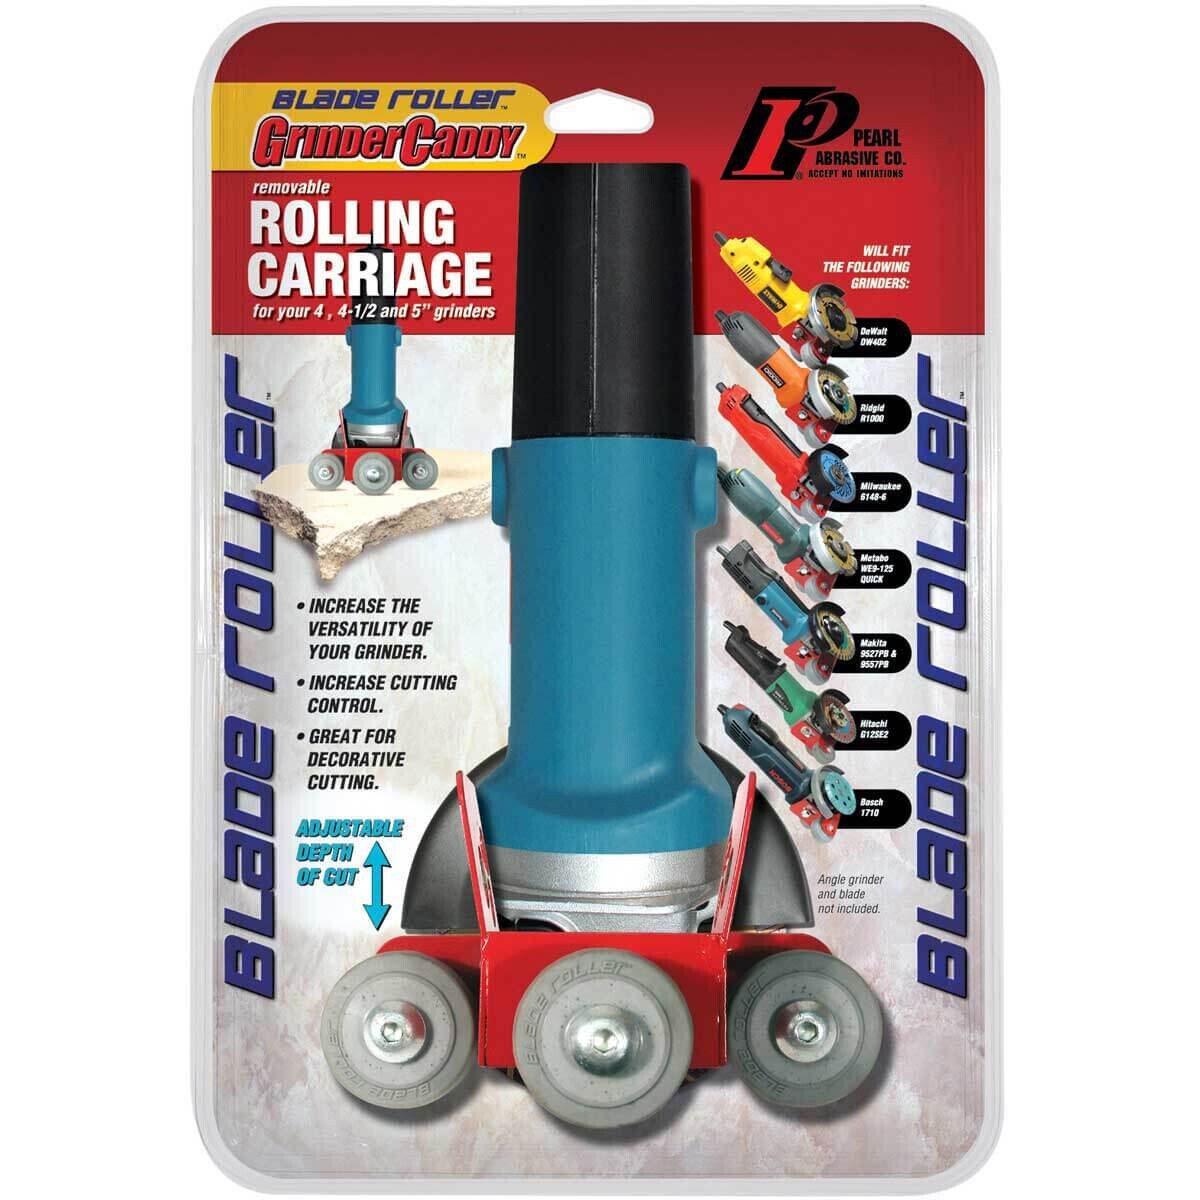 Pearl Abrasive Roller Caddy Attachment for Angle Grinders Great for crack chasing, tuck pointing, stone, masonry work and fabrication